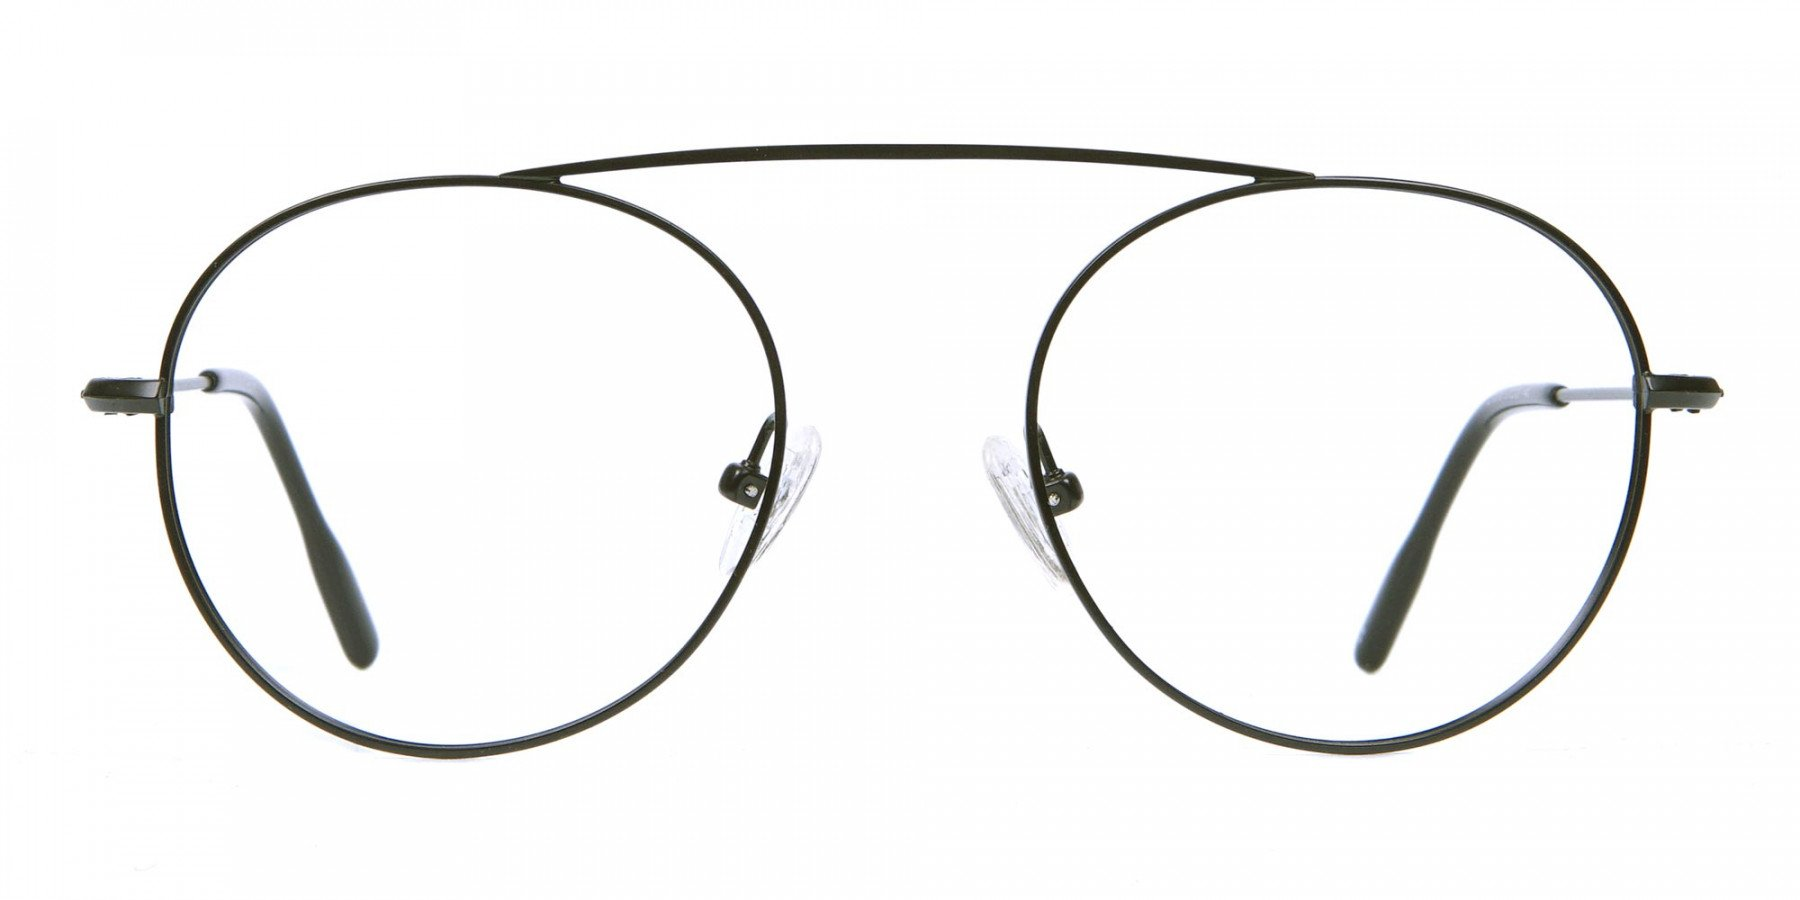 Glasses Without Nose Bridge in Black Metal - 1